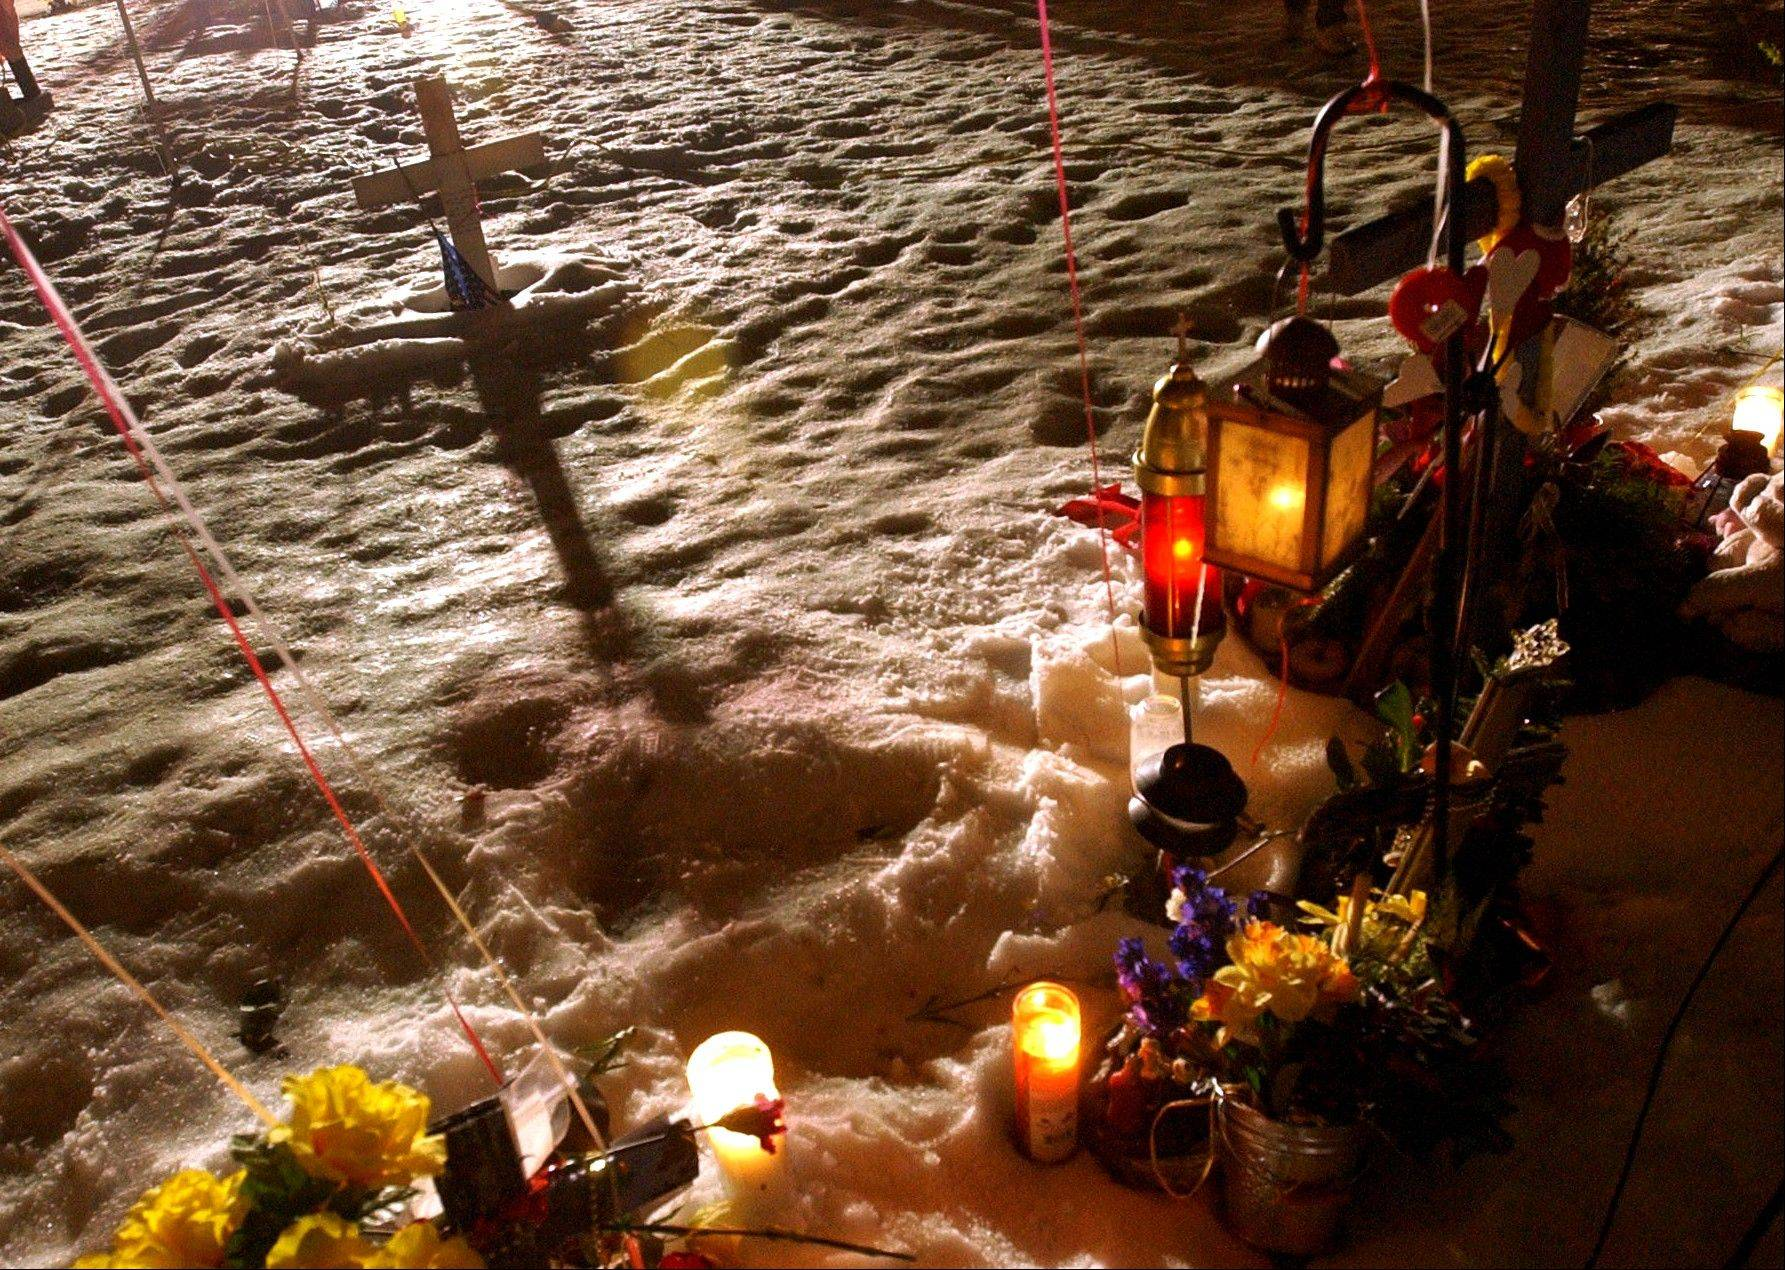 Associated Press This Feb. 20, 2004, file photo, shows a makeshift memorial at the former site of The Station nightclub, marking the one-year anniversary of a fire that killed 100 people at the club in West Warwick, R.I. Survivors and family members of the 100 people killed in a Rhode Island nightclub fire are observing the 10th anniversary of the blaze, which is Wednesday, Feb. 20, 2013, with a memorial service scheduled for Sunday. (